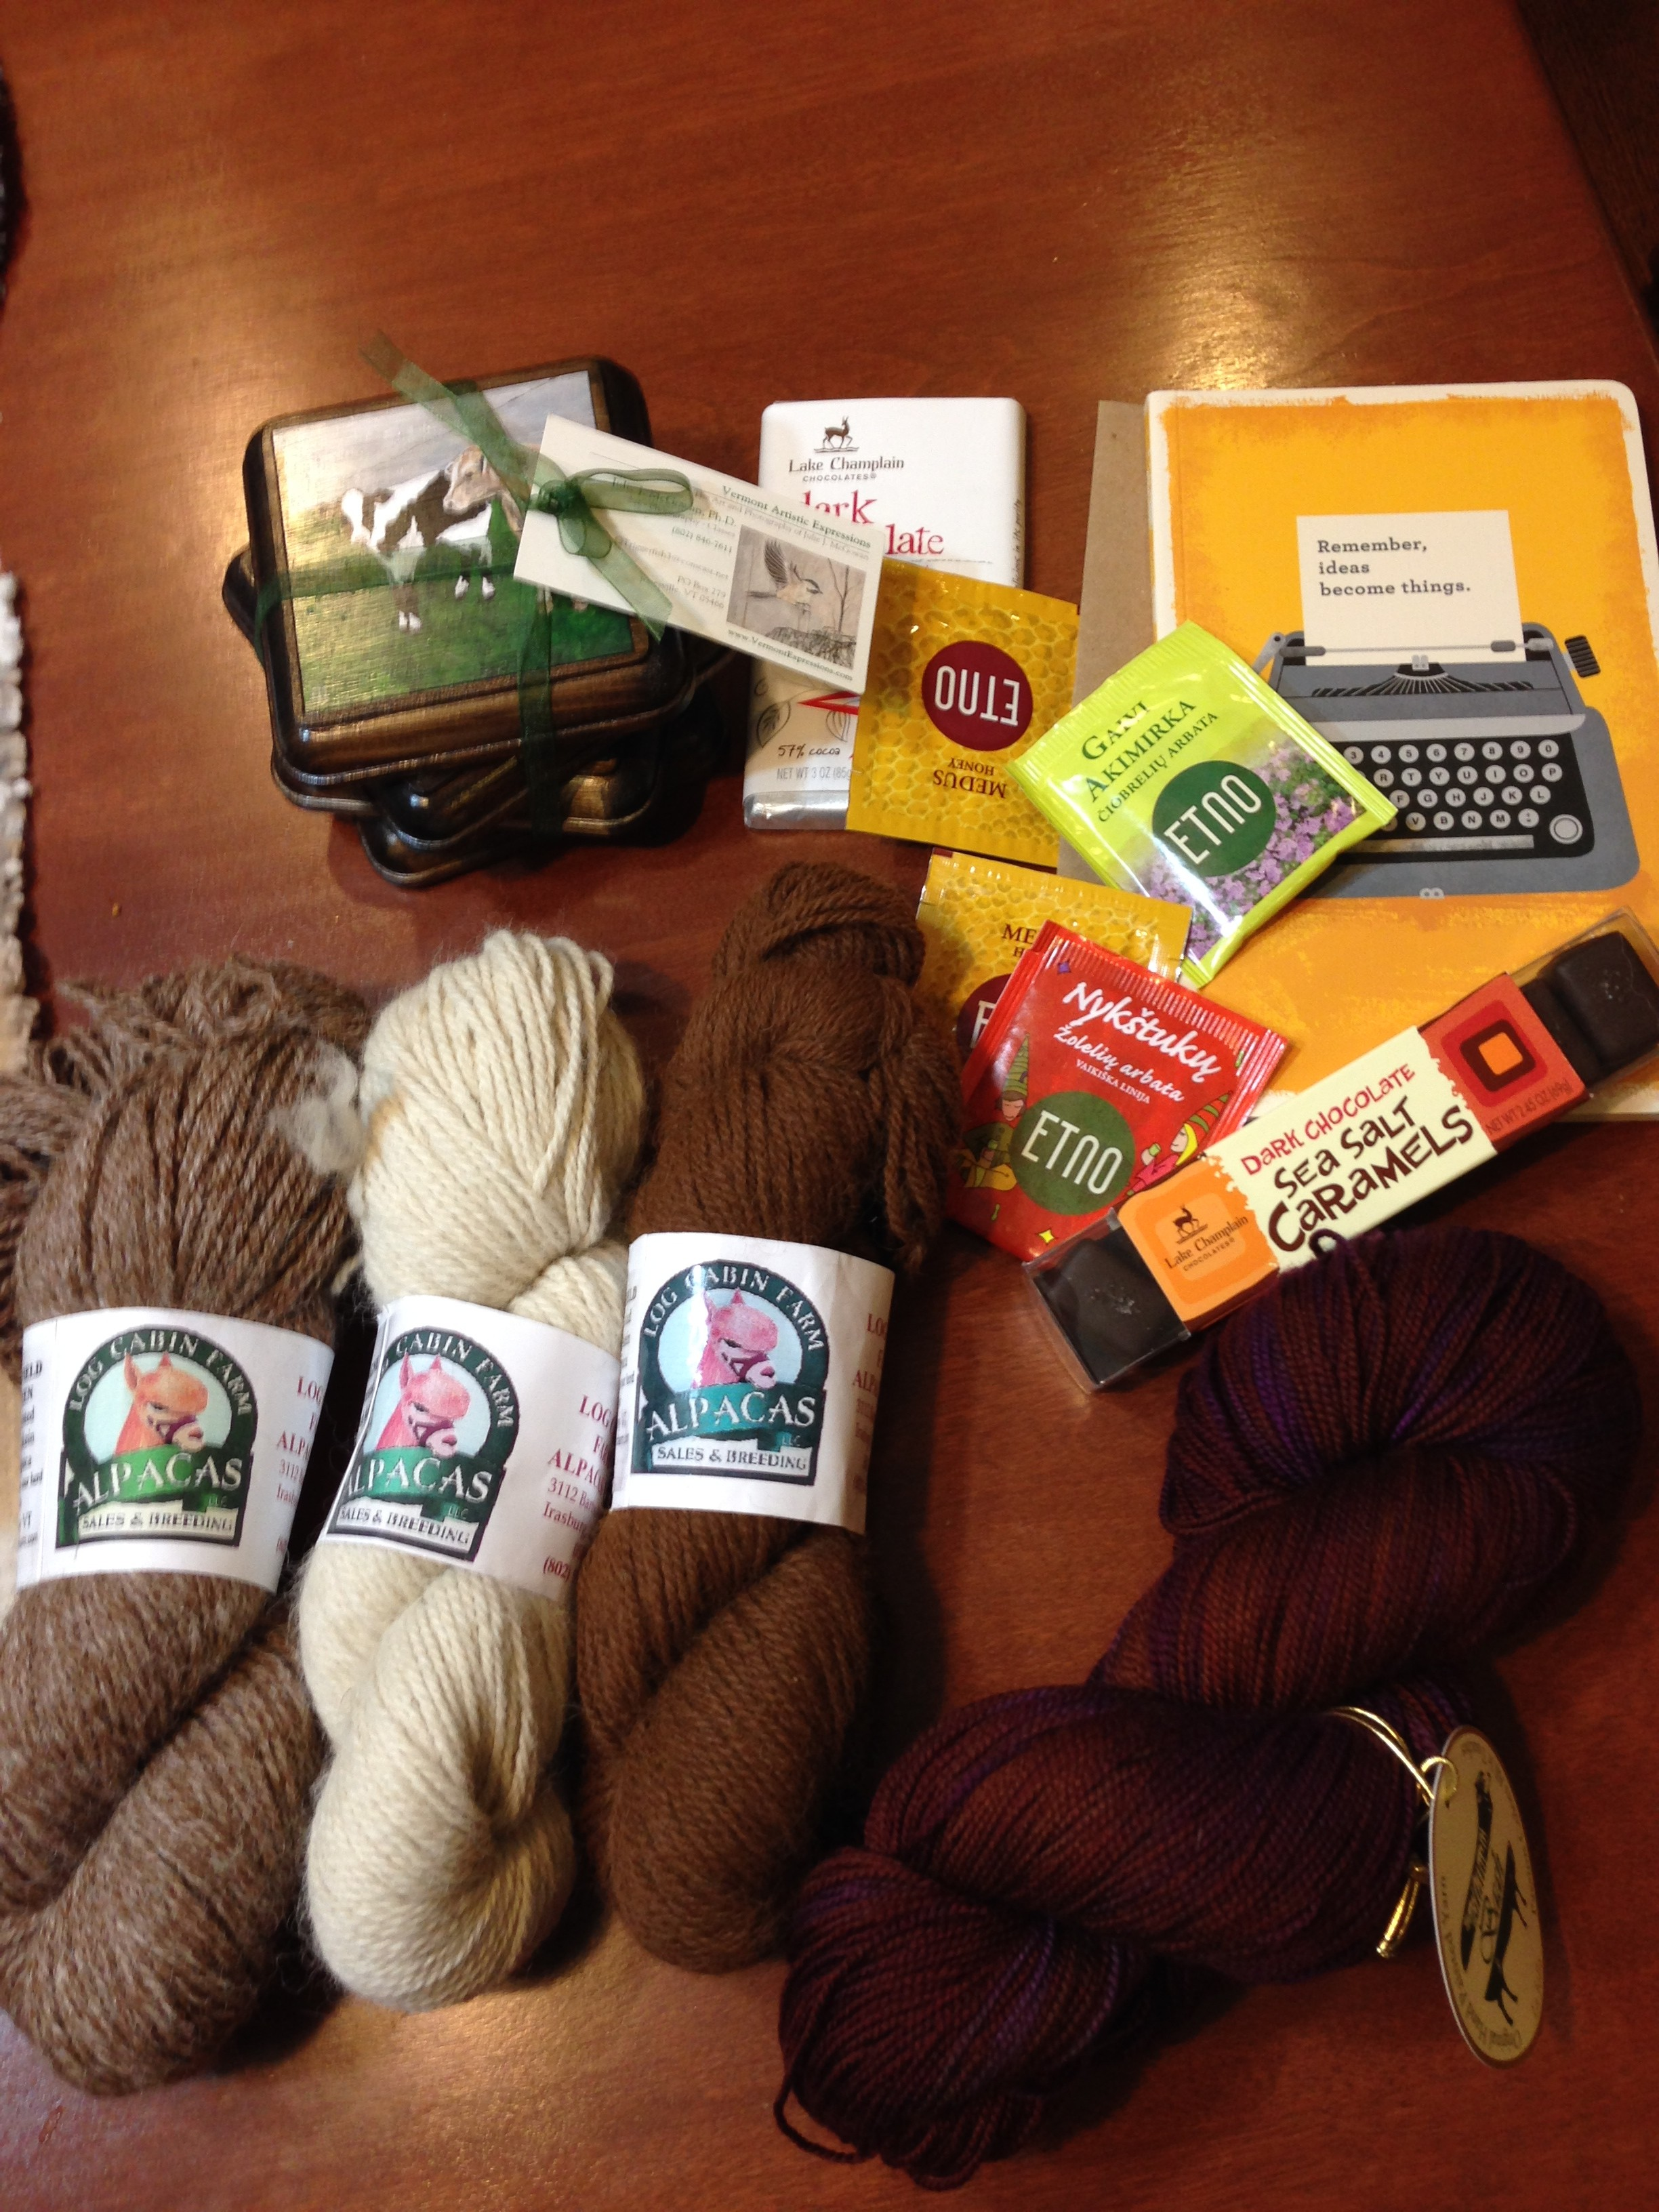 Clockwise from bottom left: Vermont alpaca, hand-painted coasters, Lithuanian chocolate and tea, a journal, and yummy sock yarn!